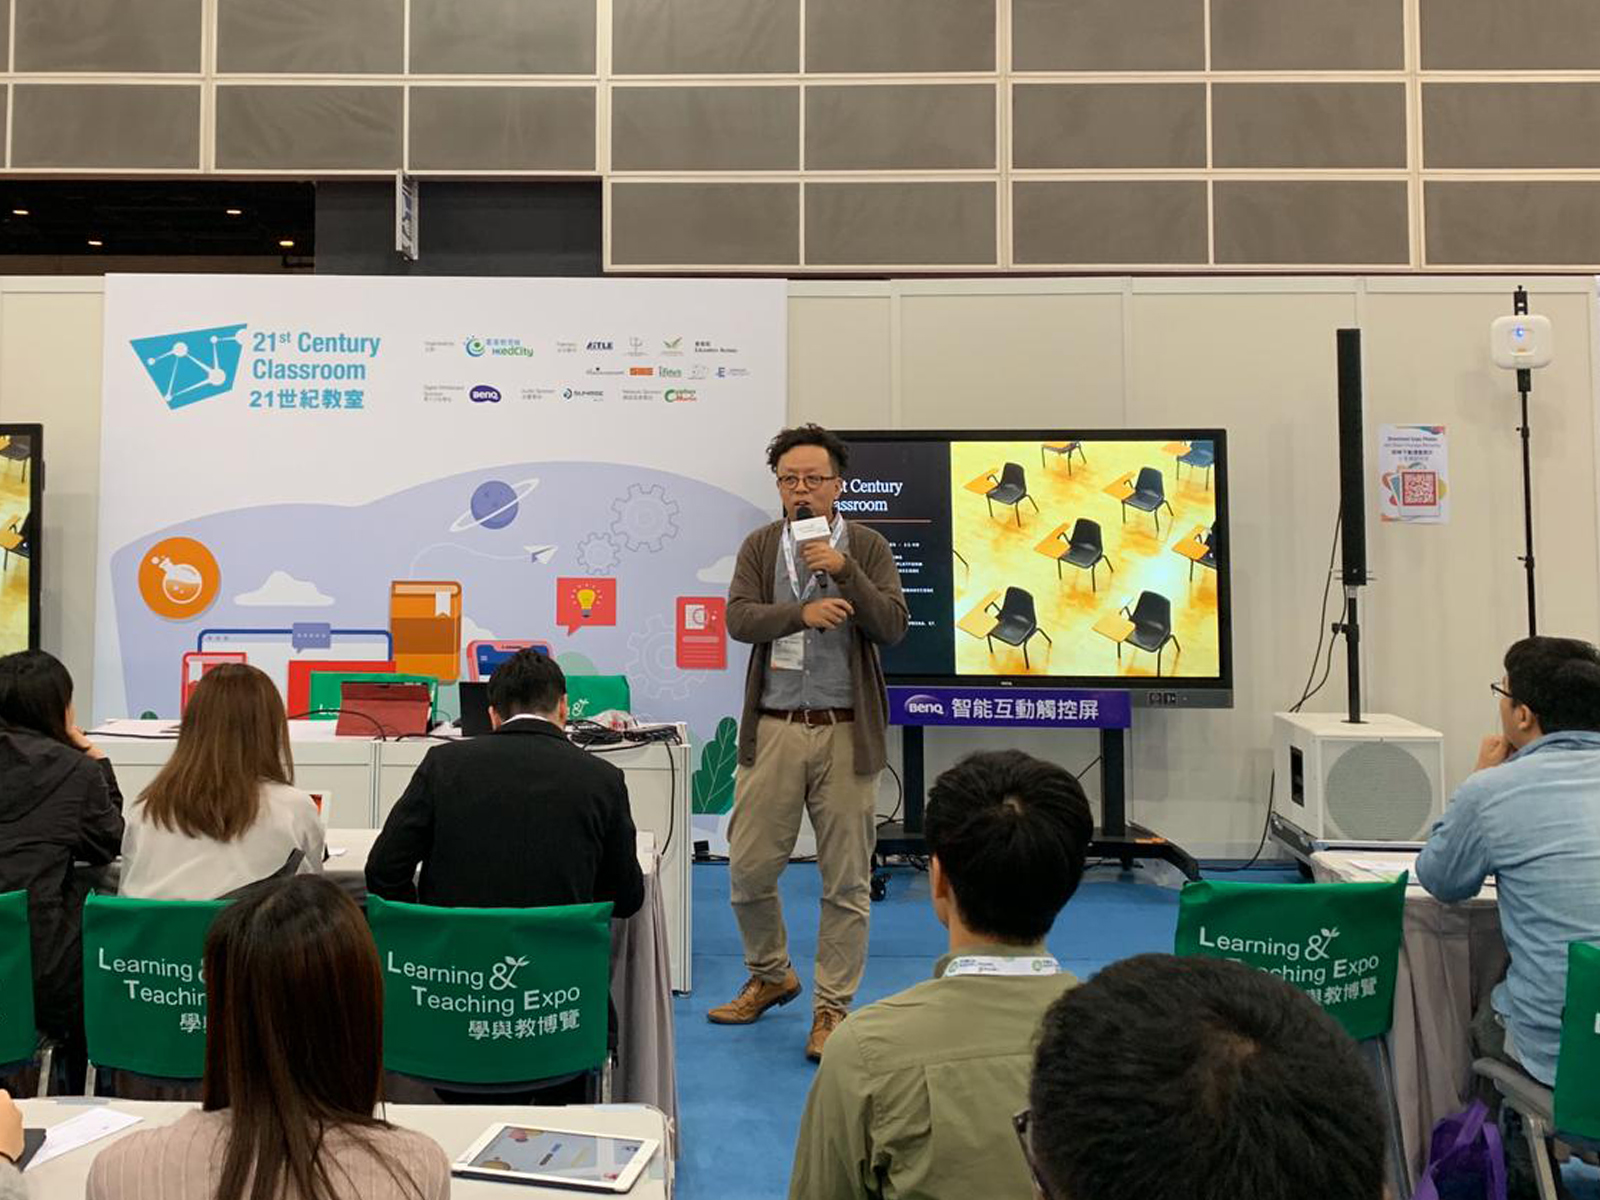 Learning-Teaching-Expo-2019-4.jpeg